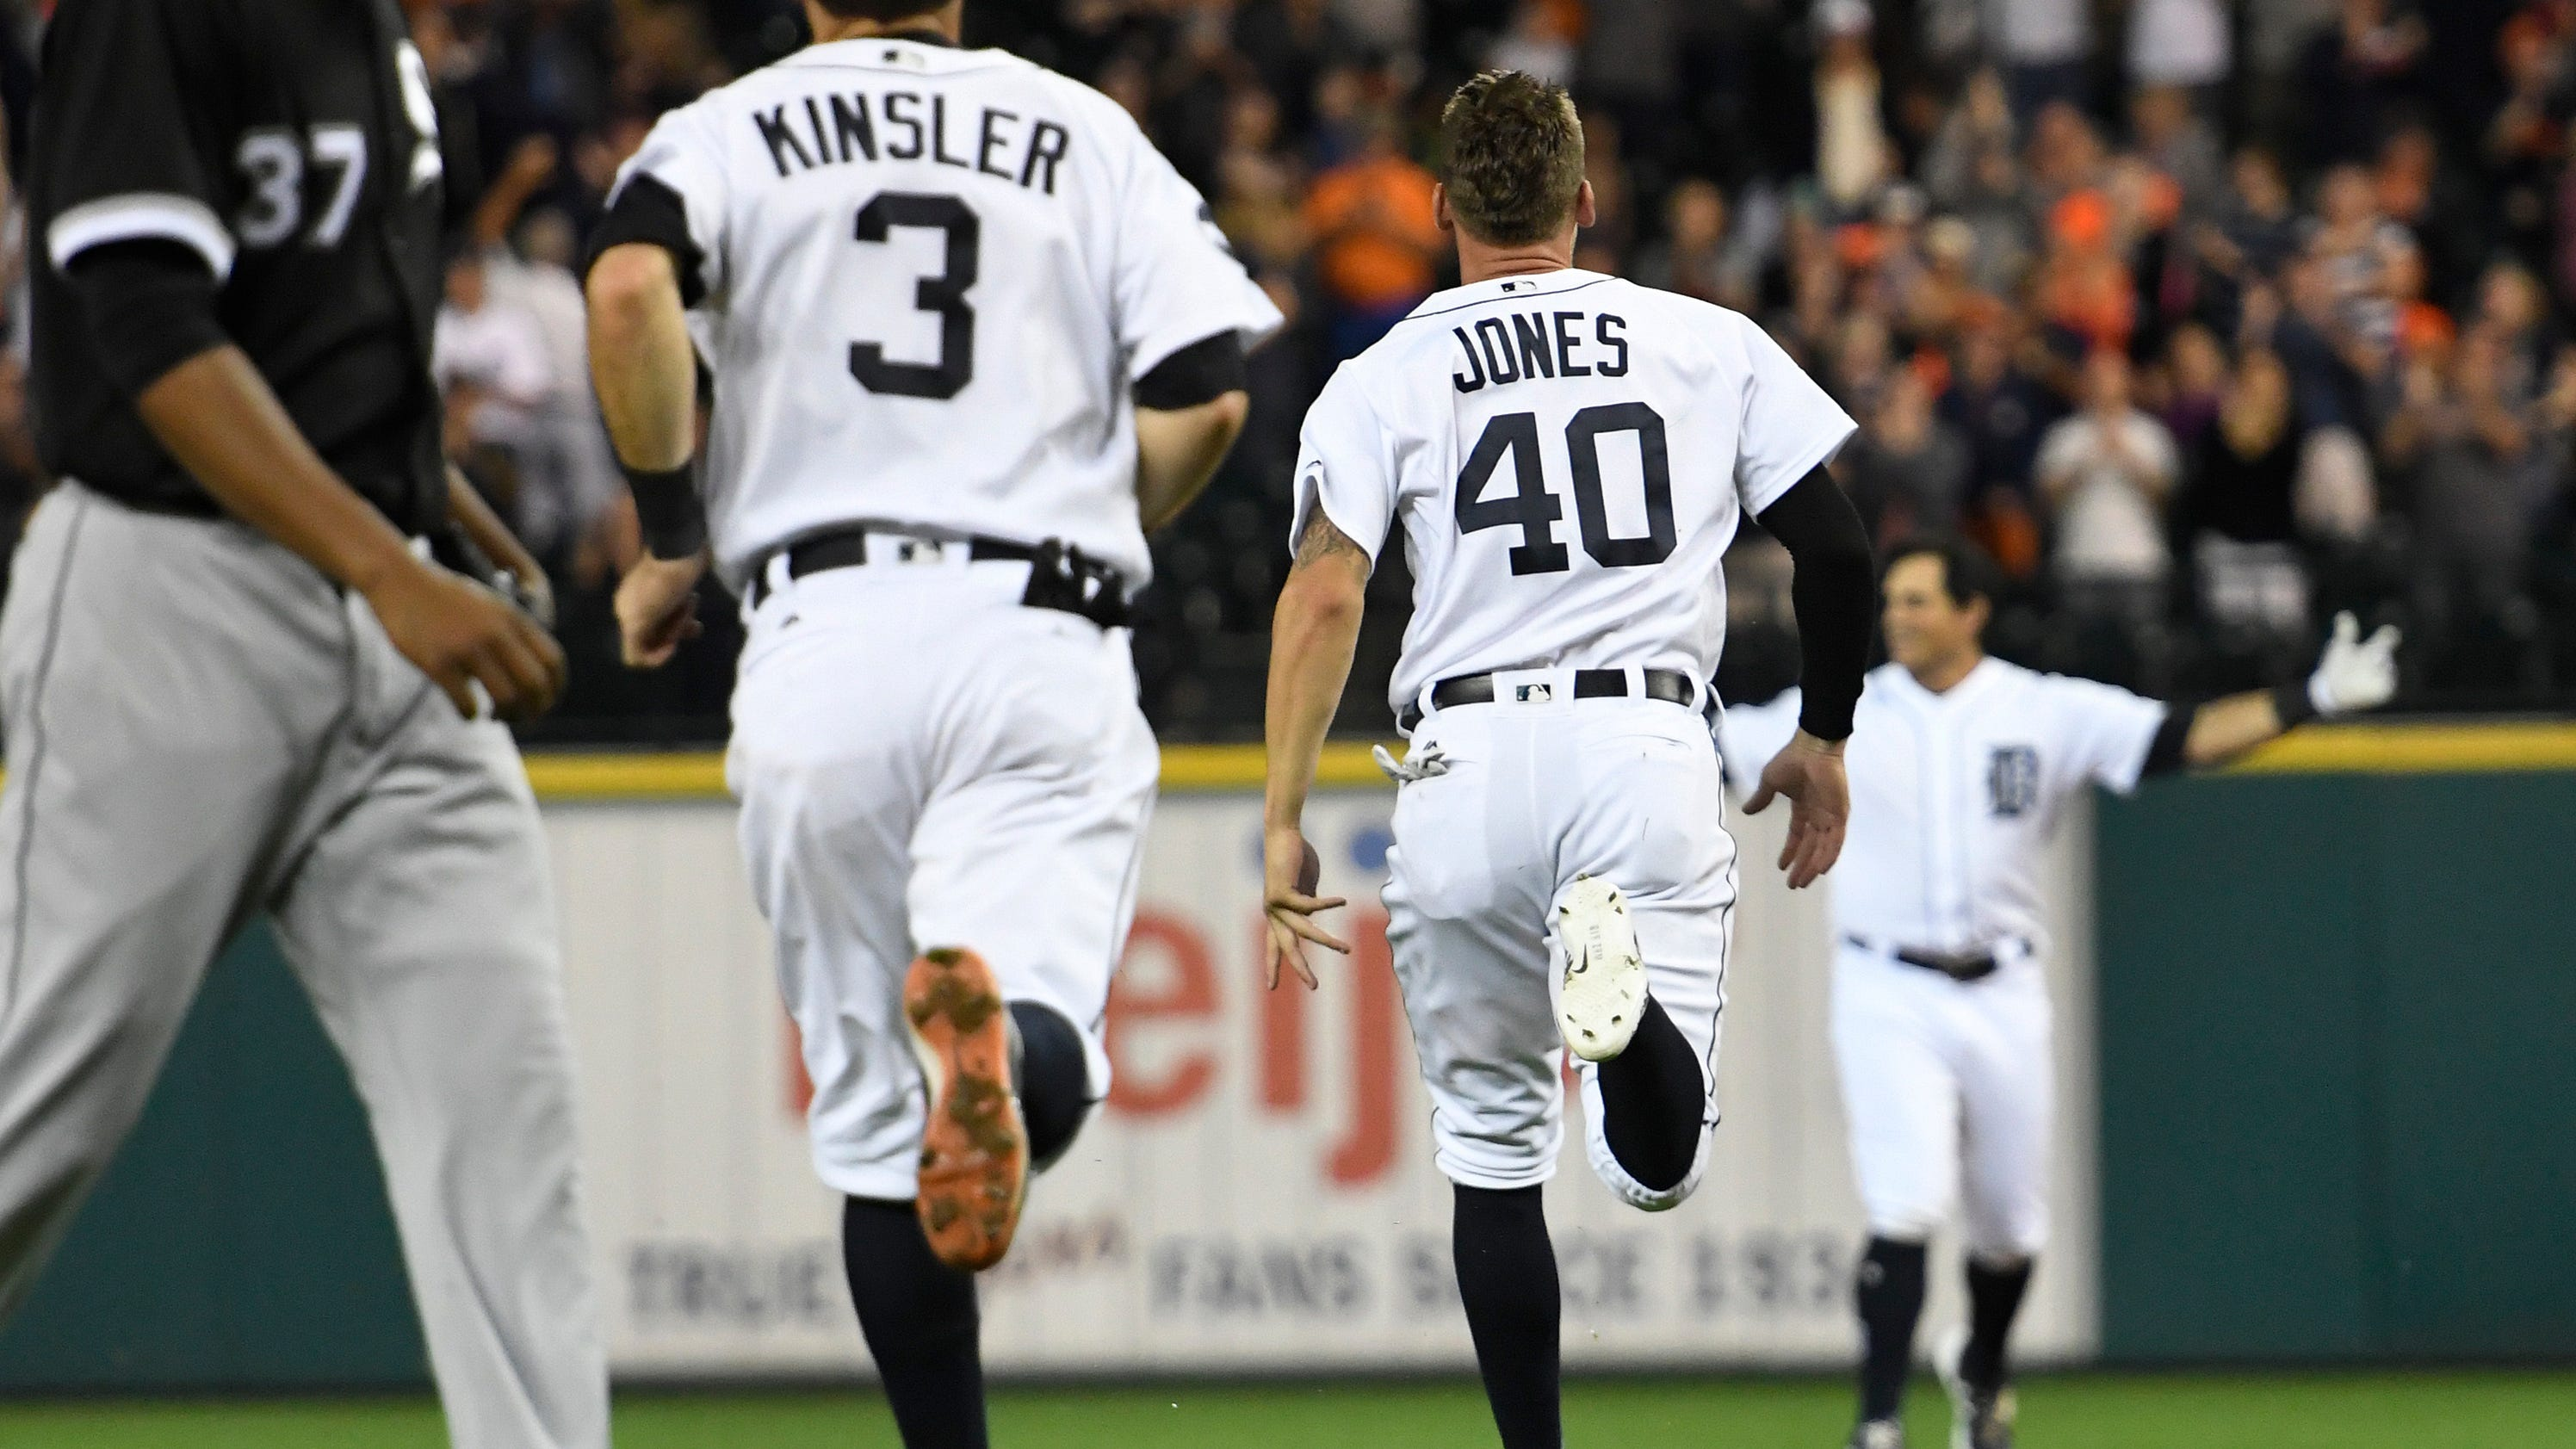 Auto-Mahtook: Outfielder gets Tigers walk-off win vs ChiSox